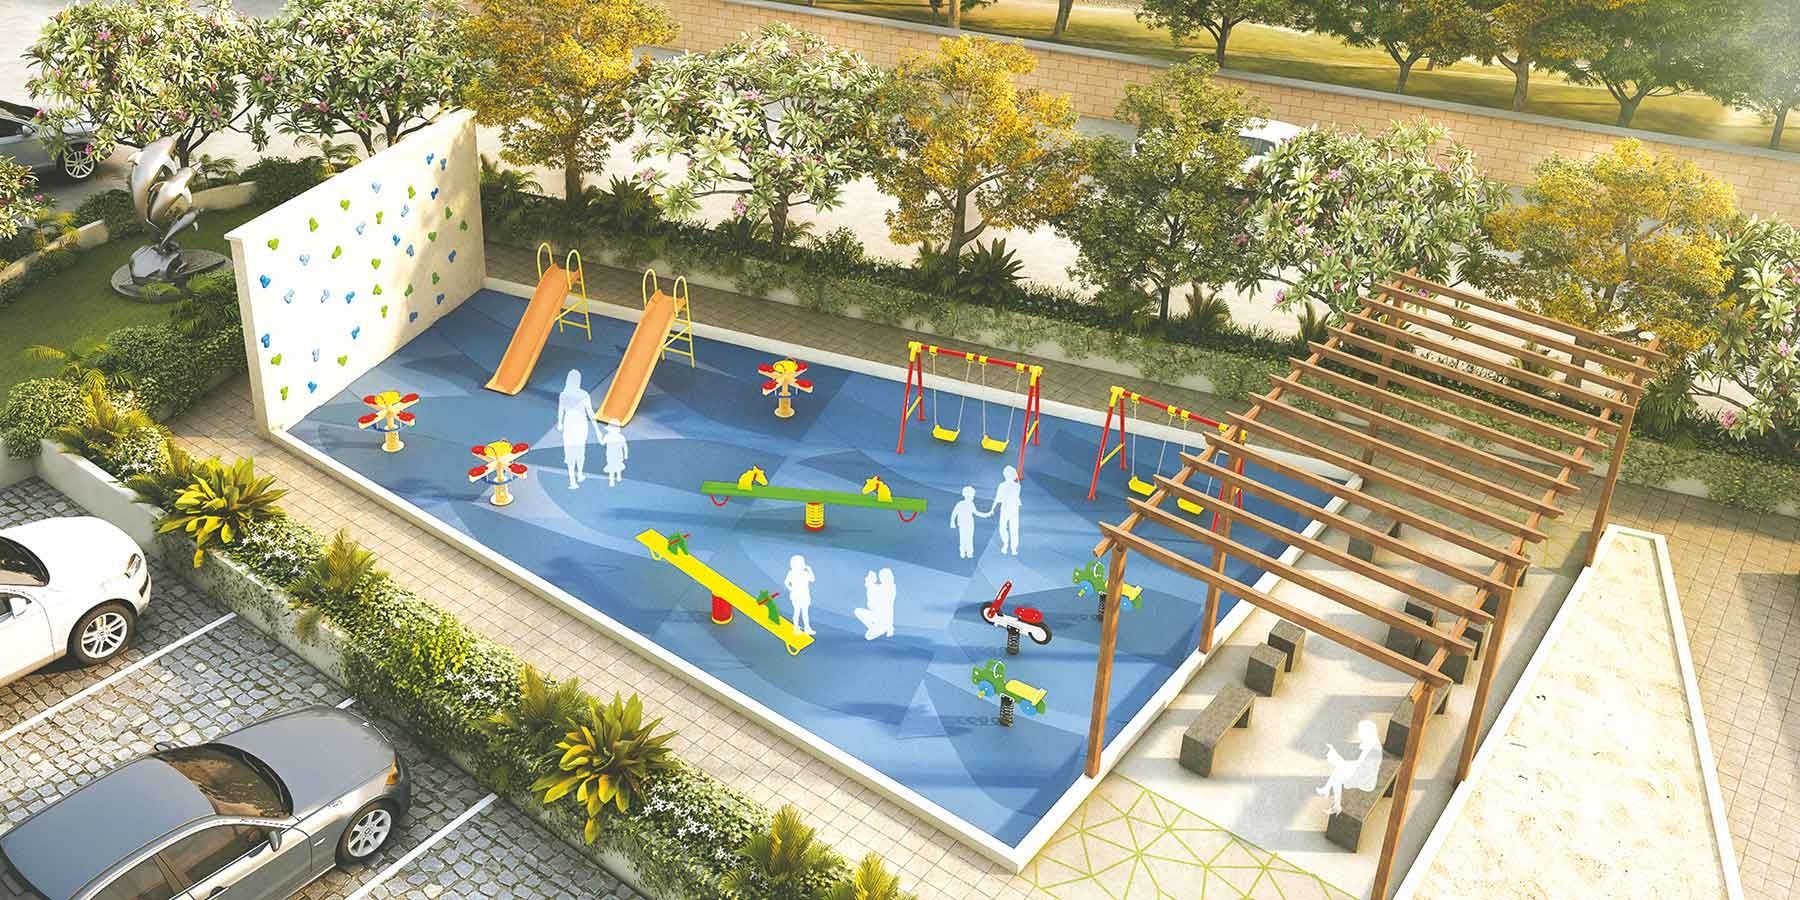 avnee optima heights phase 3 project amenities features2